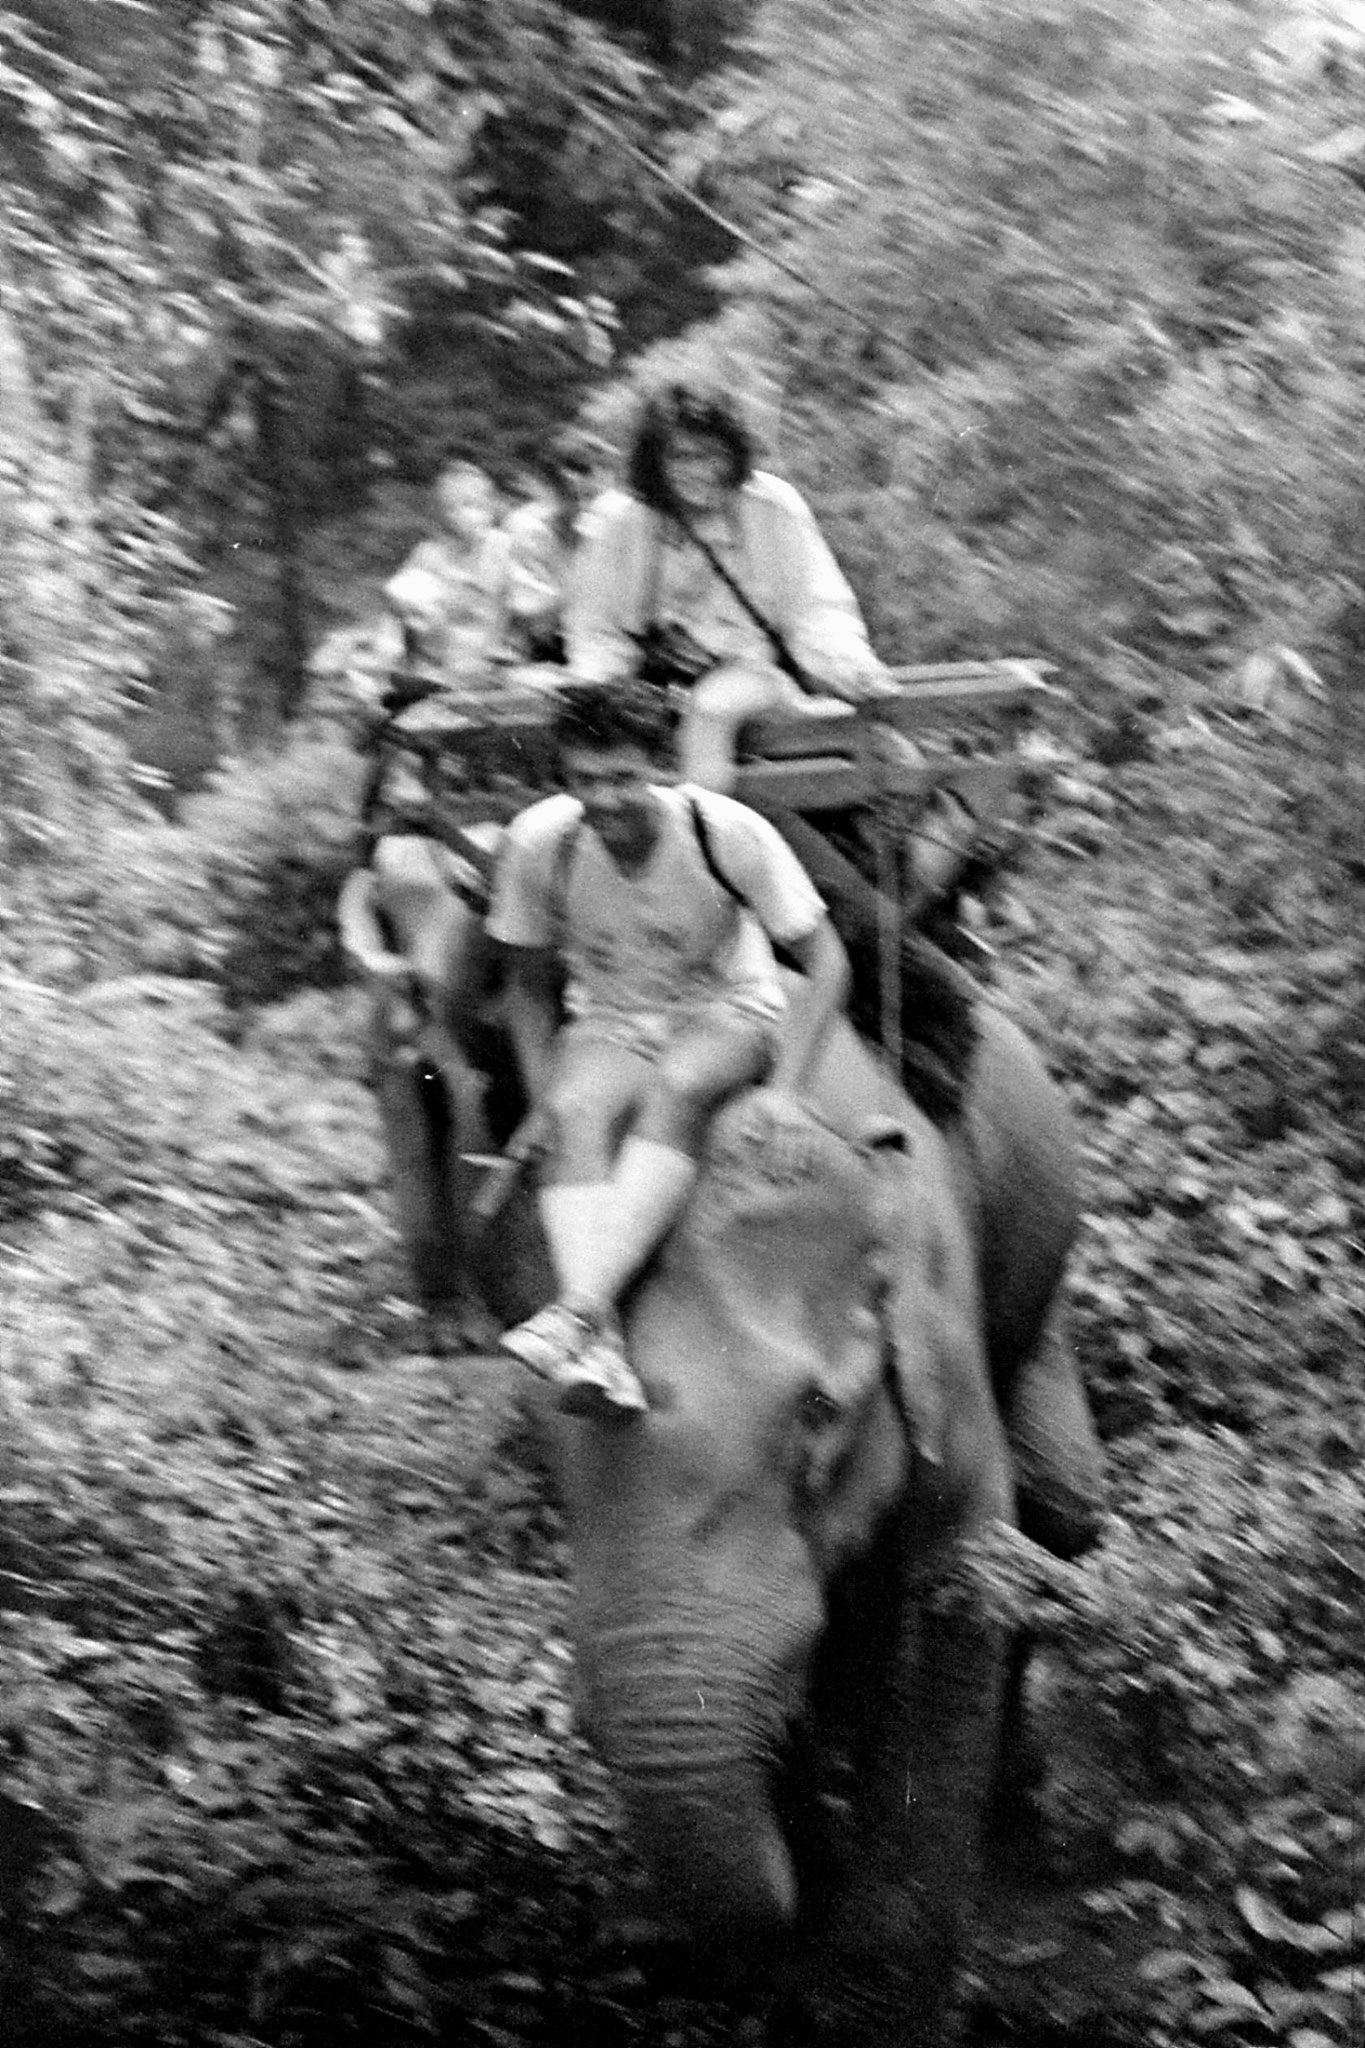 13/6/1990: 25: Last day of Trek, on elephant